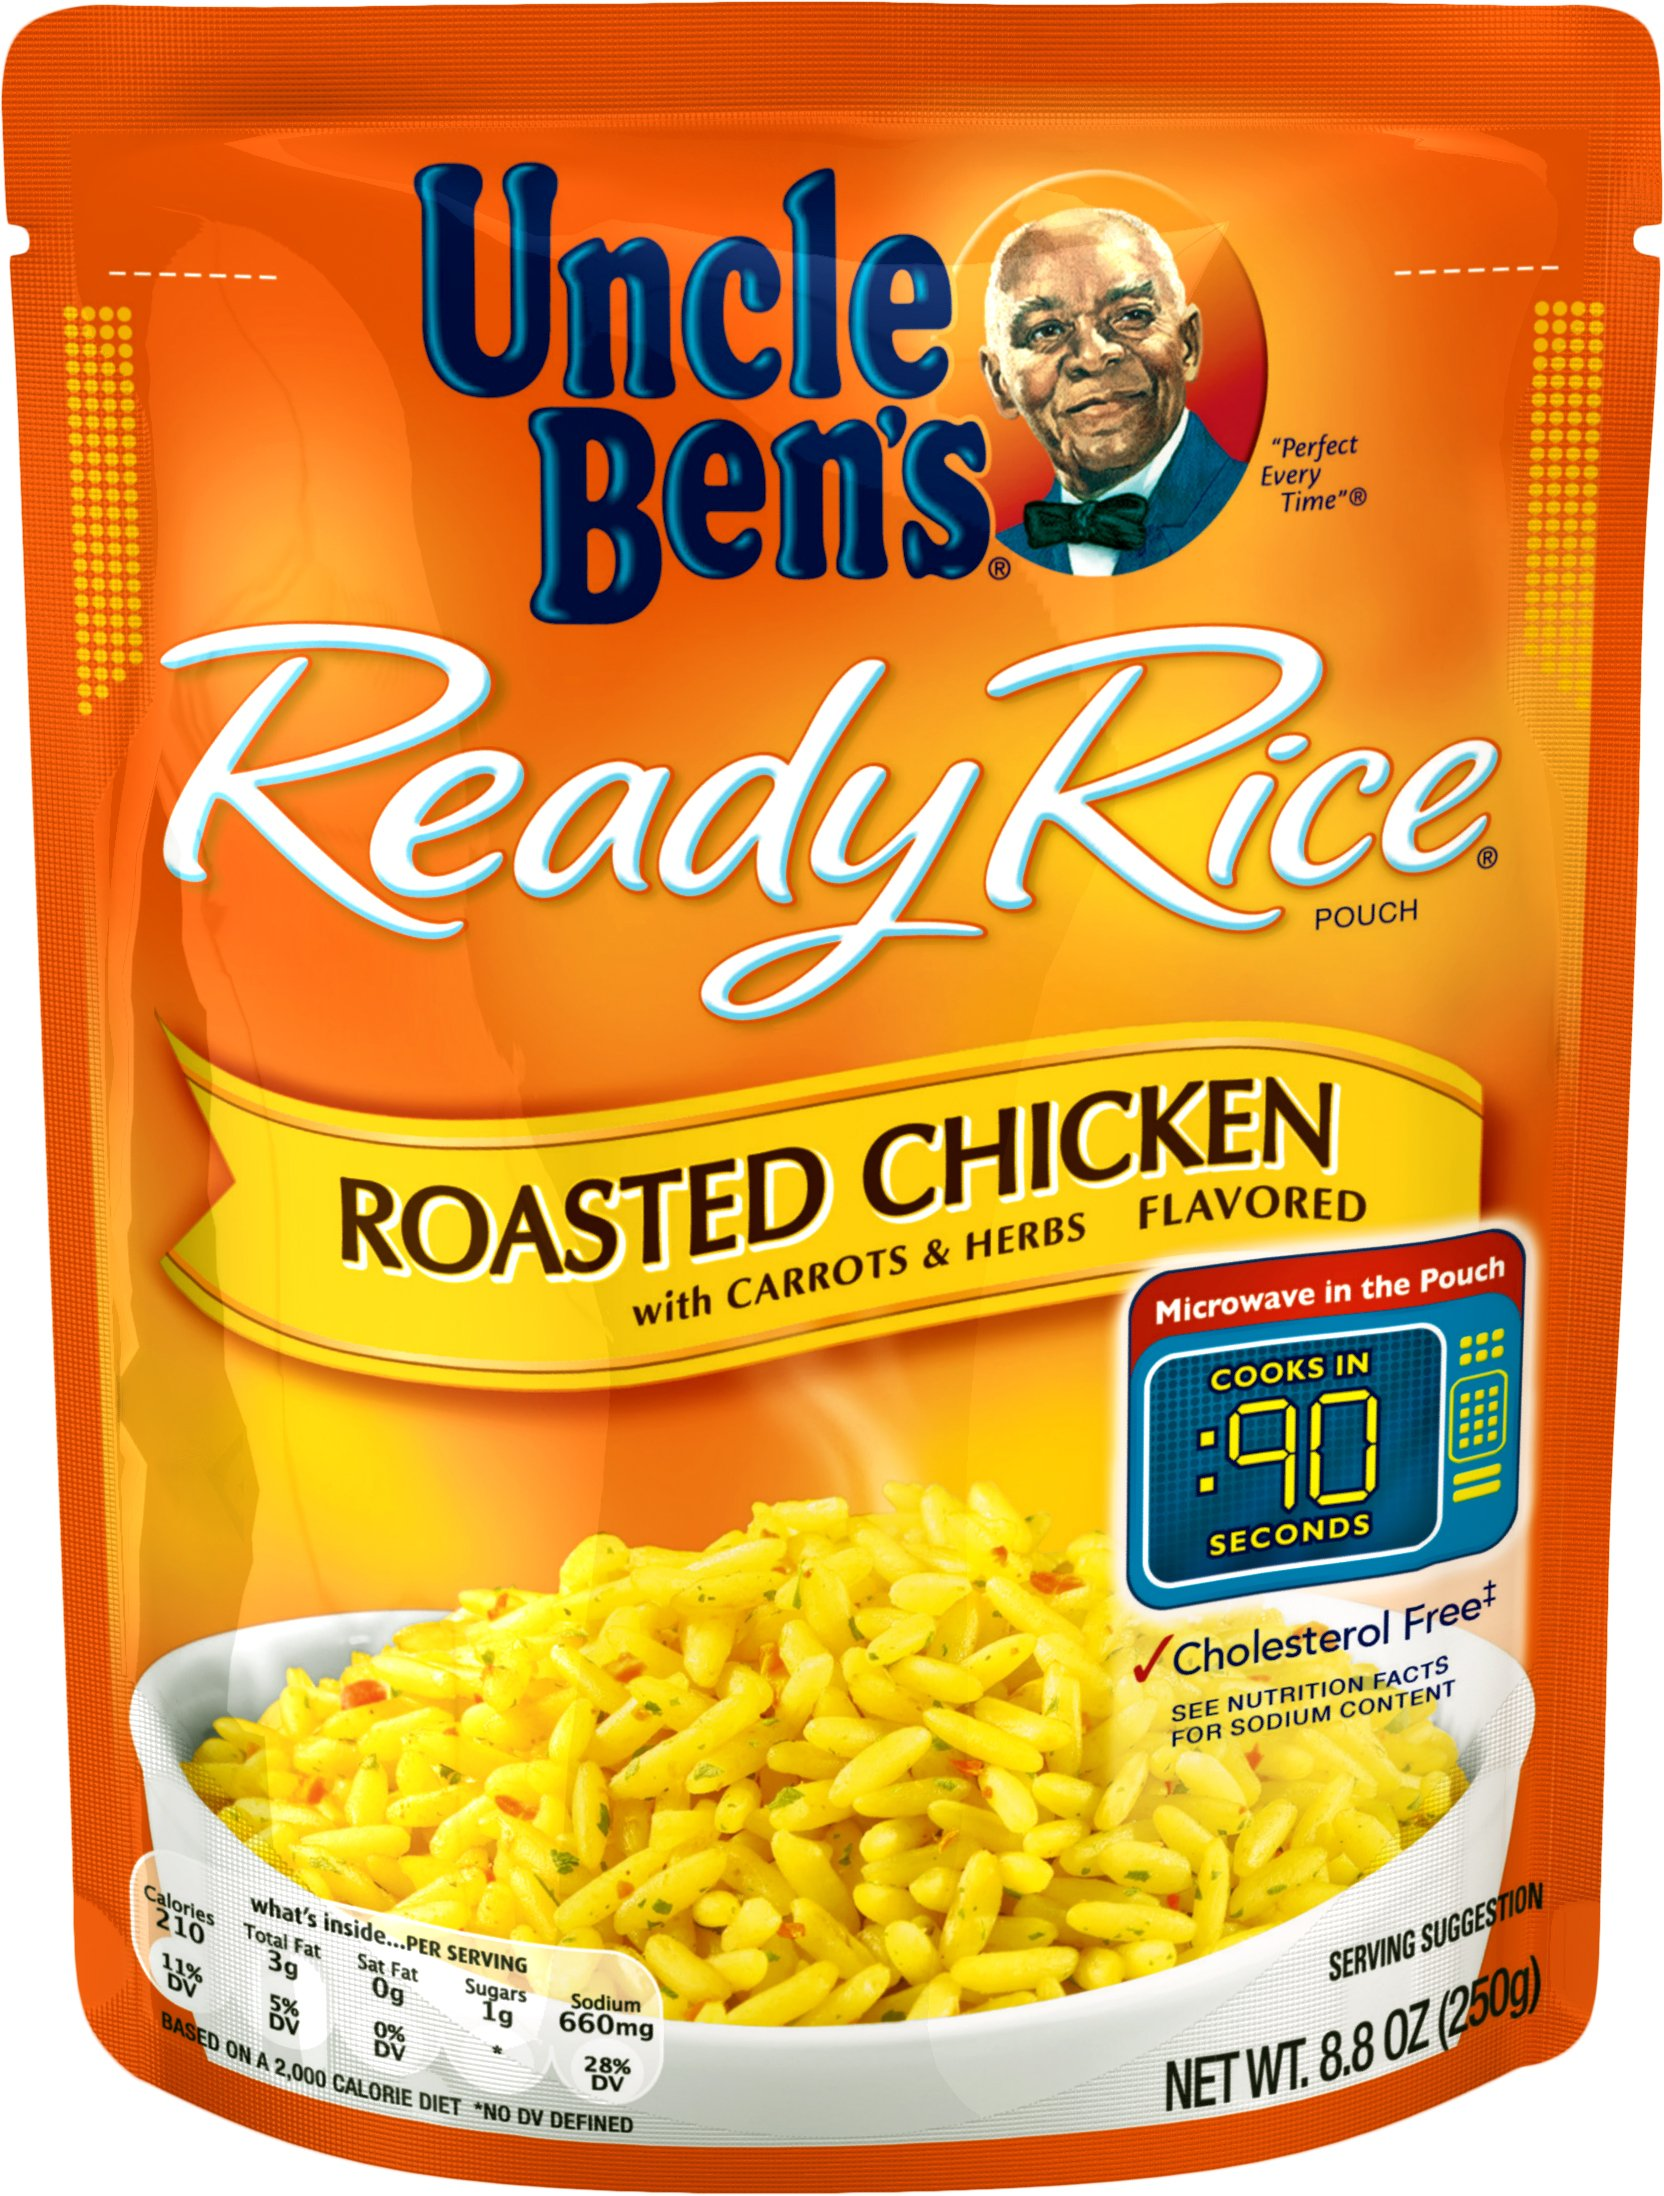 UNCLE BEN'S Ready Rice: Roasted Chicken, 8.8oz